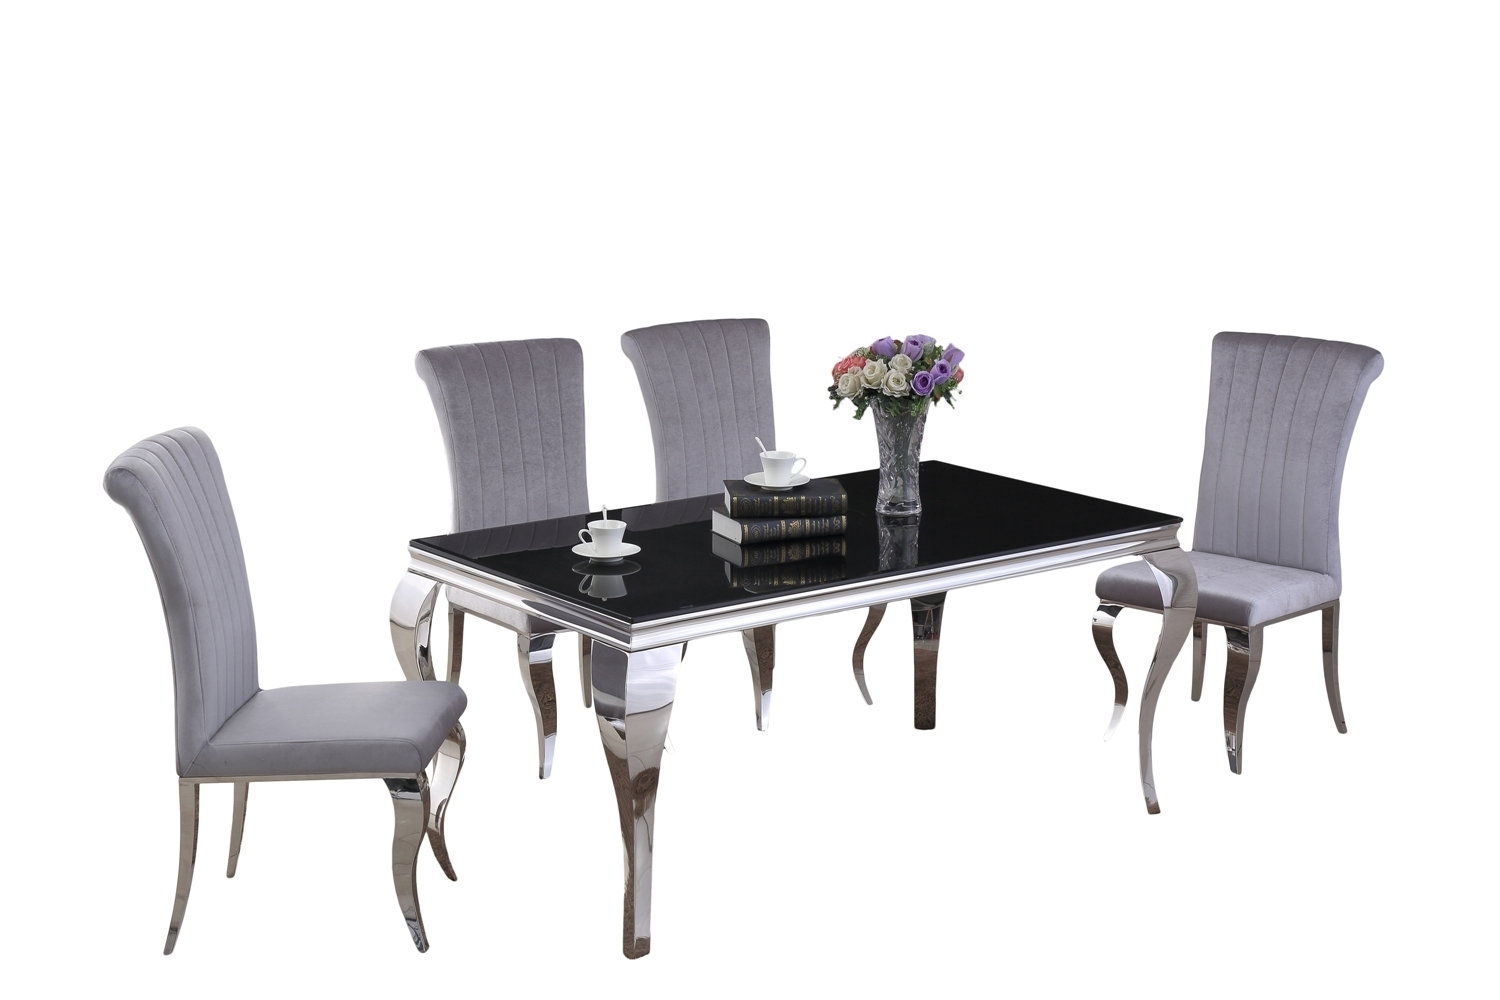 Grey Velvet High Back Dining Chairs: 160cm Black Glass Dining Table & 6 Grey Velvet Chairs